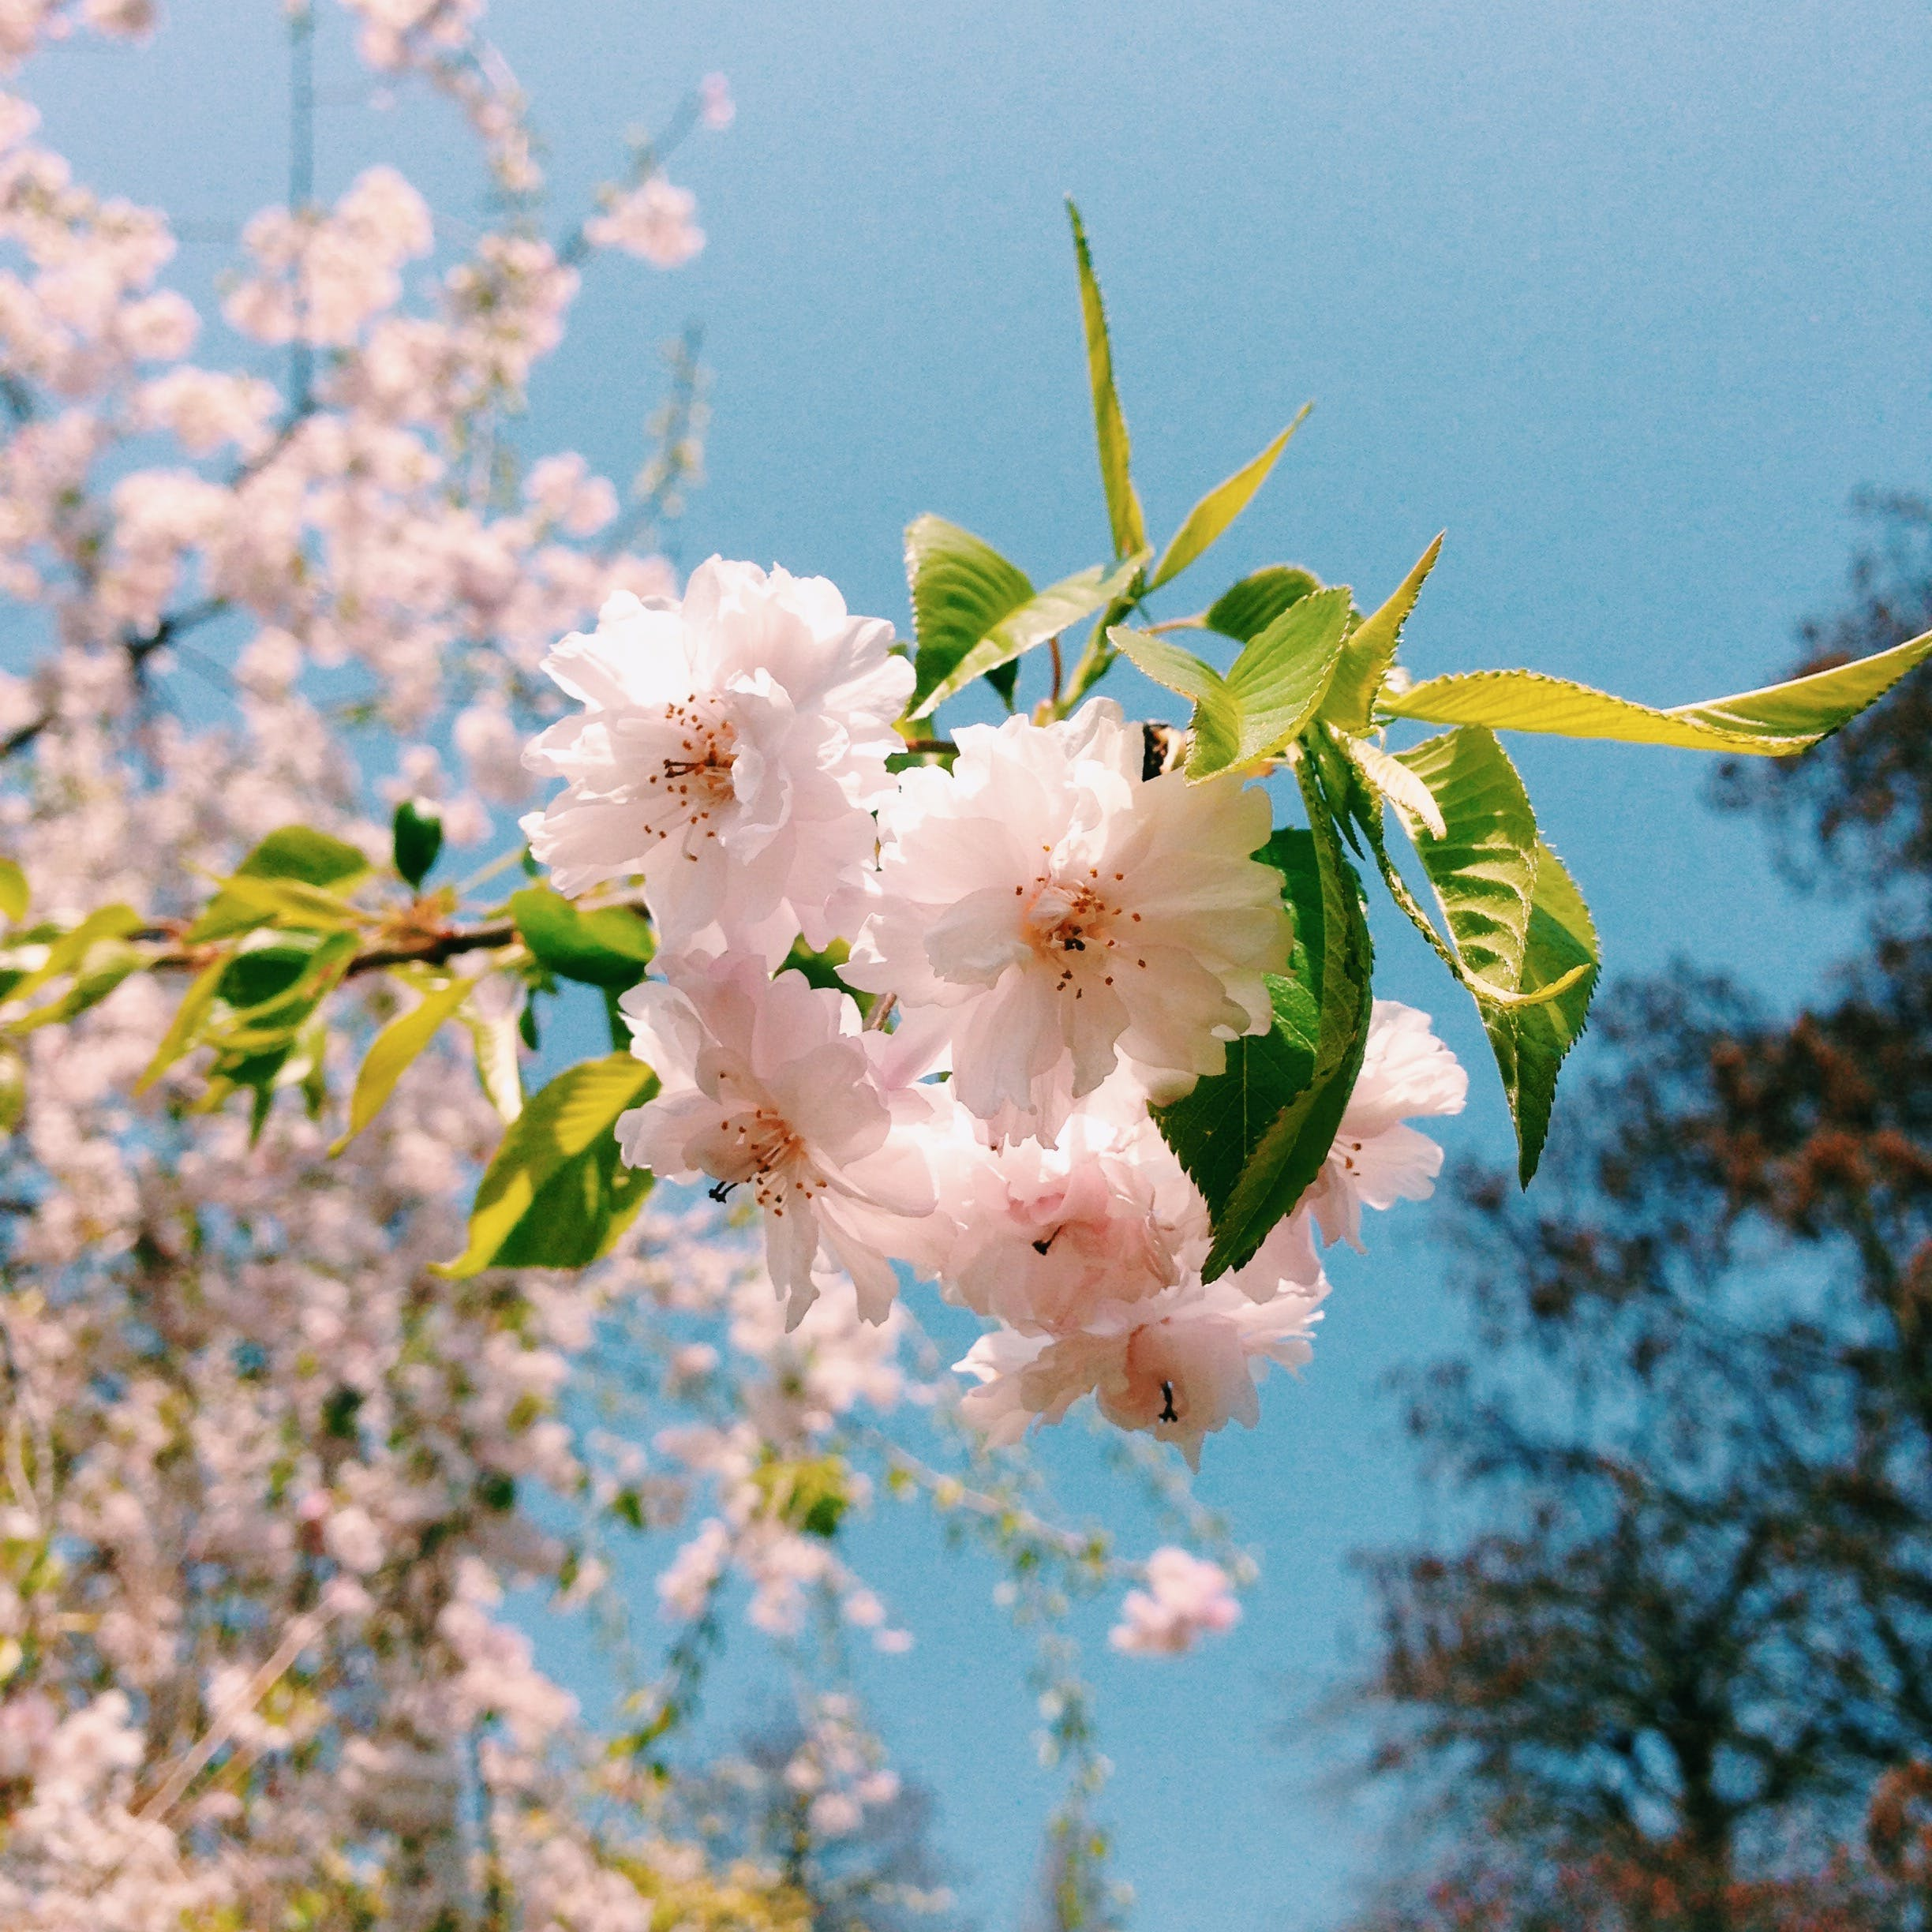 Free stock photo of beautiful flowers, blossoms, nature, plant